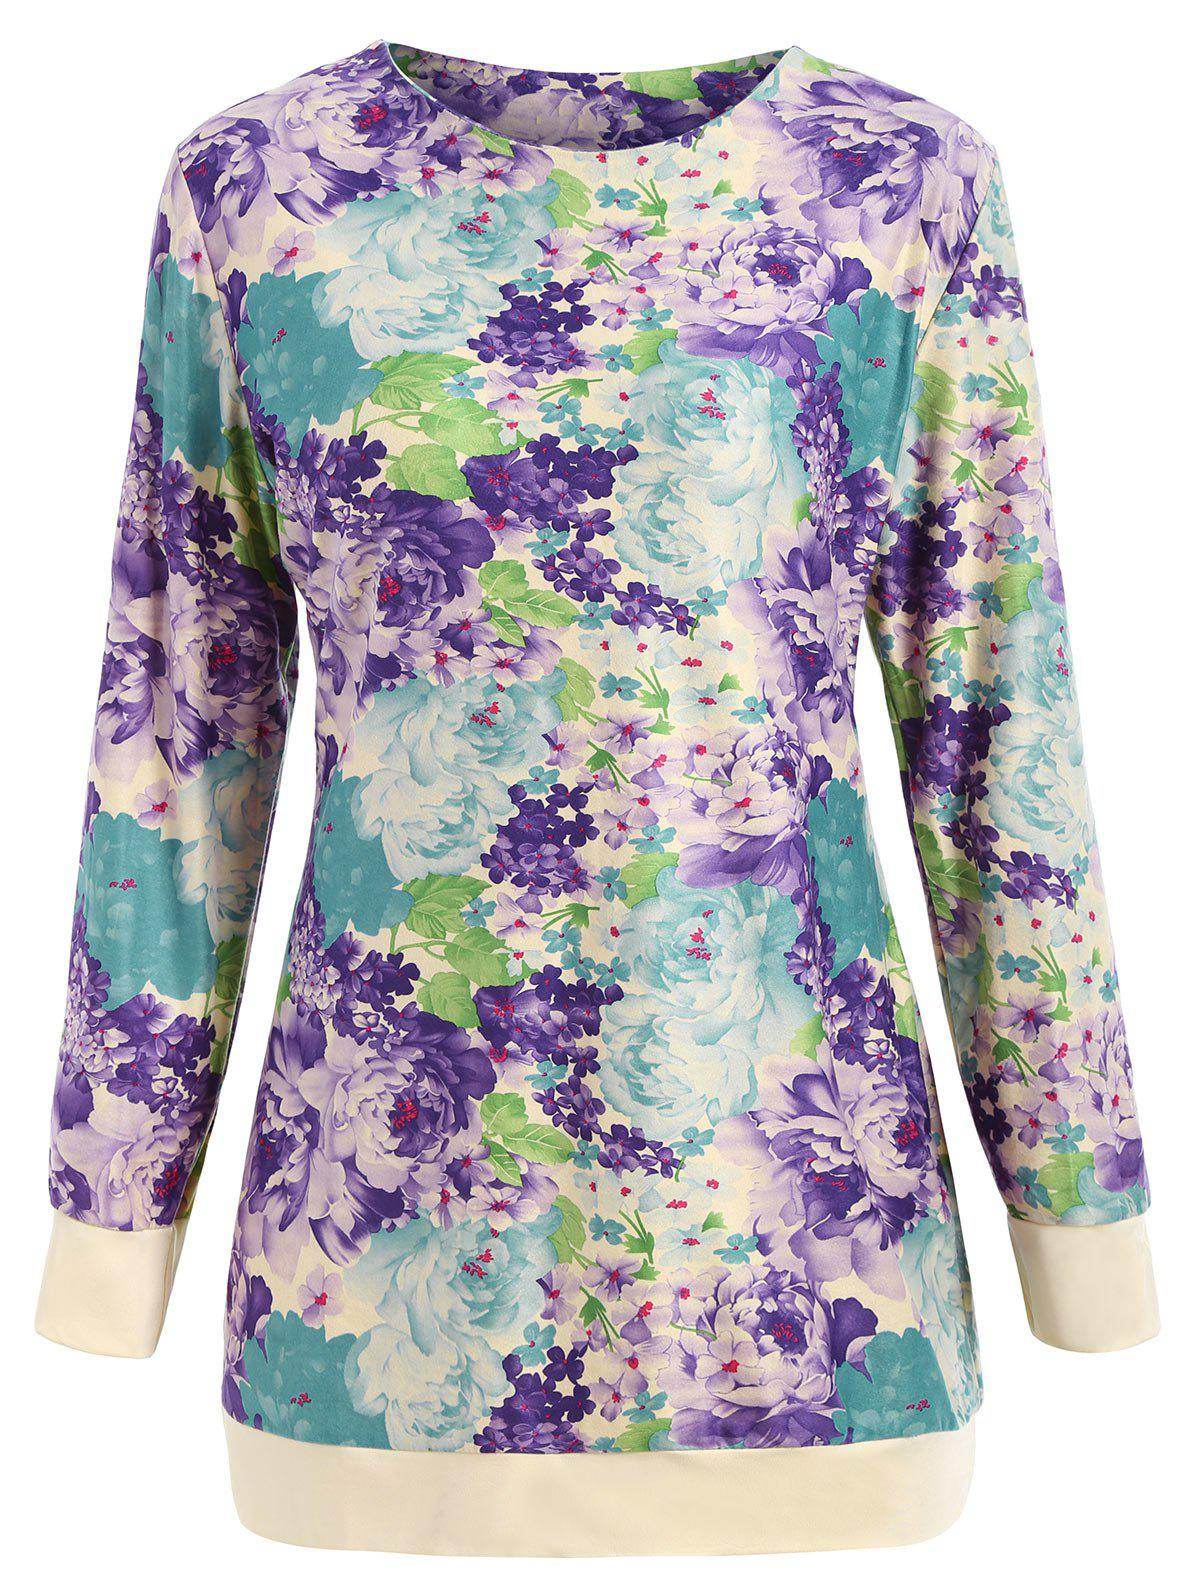 0baaba57c872 53% OFF] Slimming Long Sleeve Floral Mini Dress | Rosegal